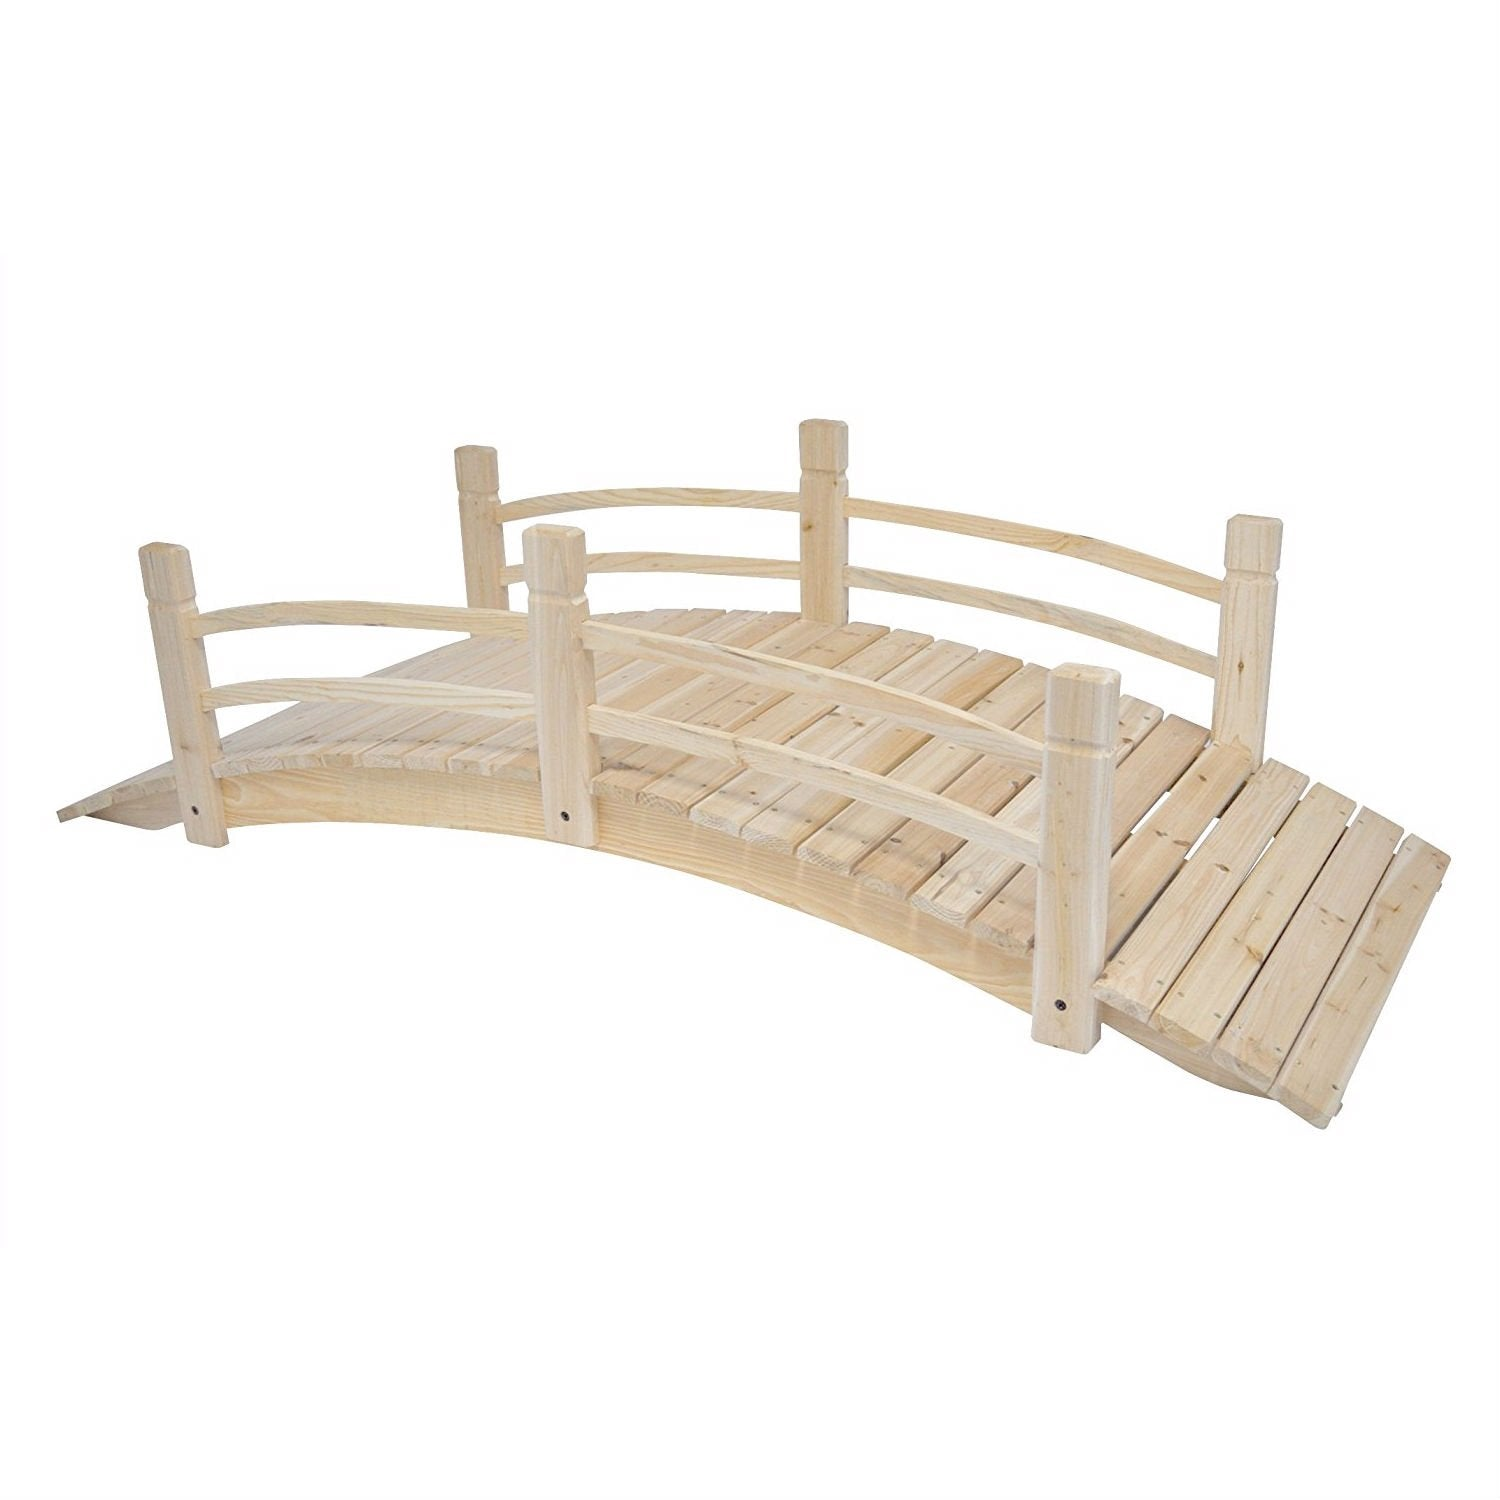 Cedar Wood 6-Ft Garden Bridge - Weight Capacity 575 lbs